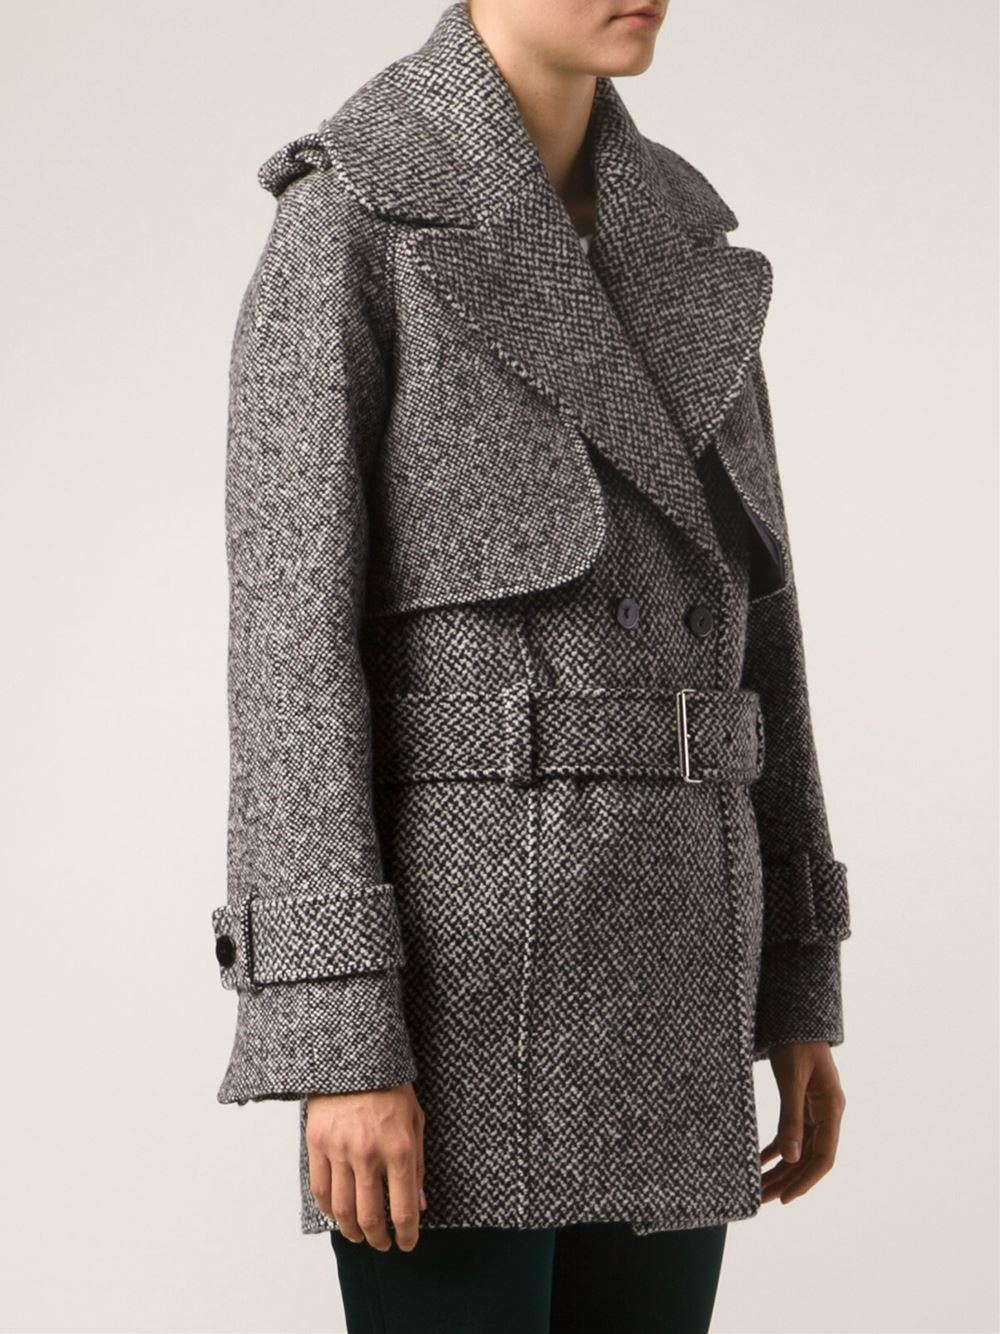 Carven Double Breasted Tweed Coat in Black   Lyst